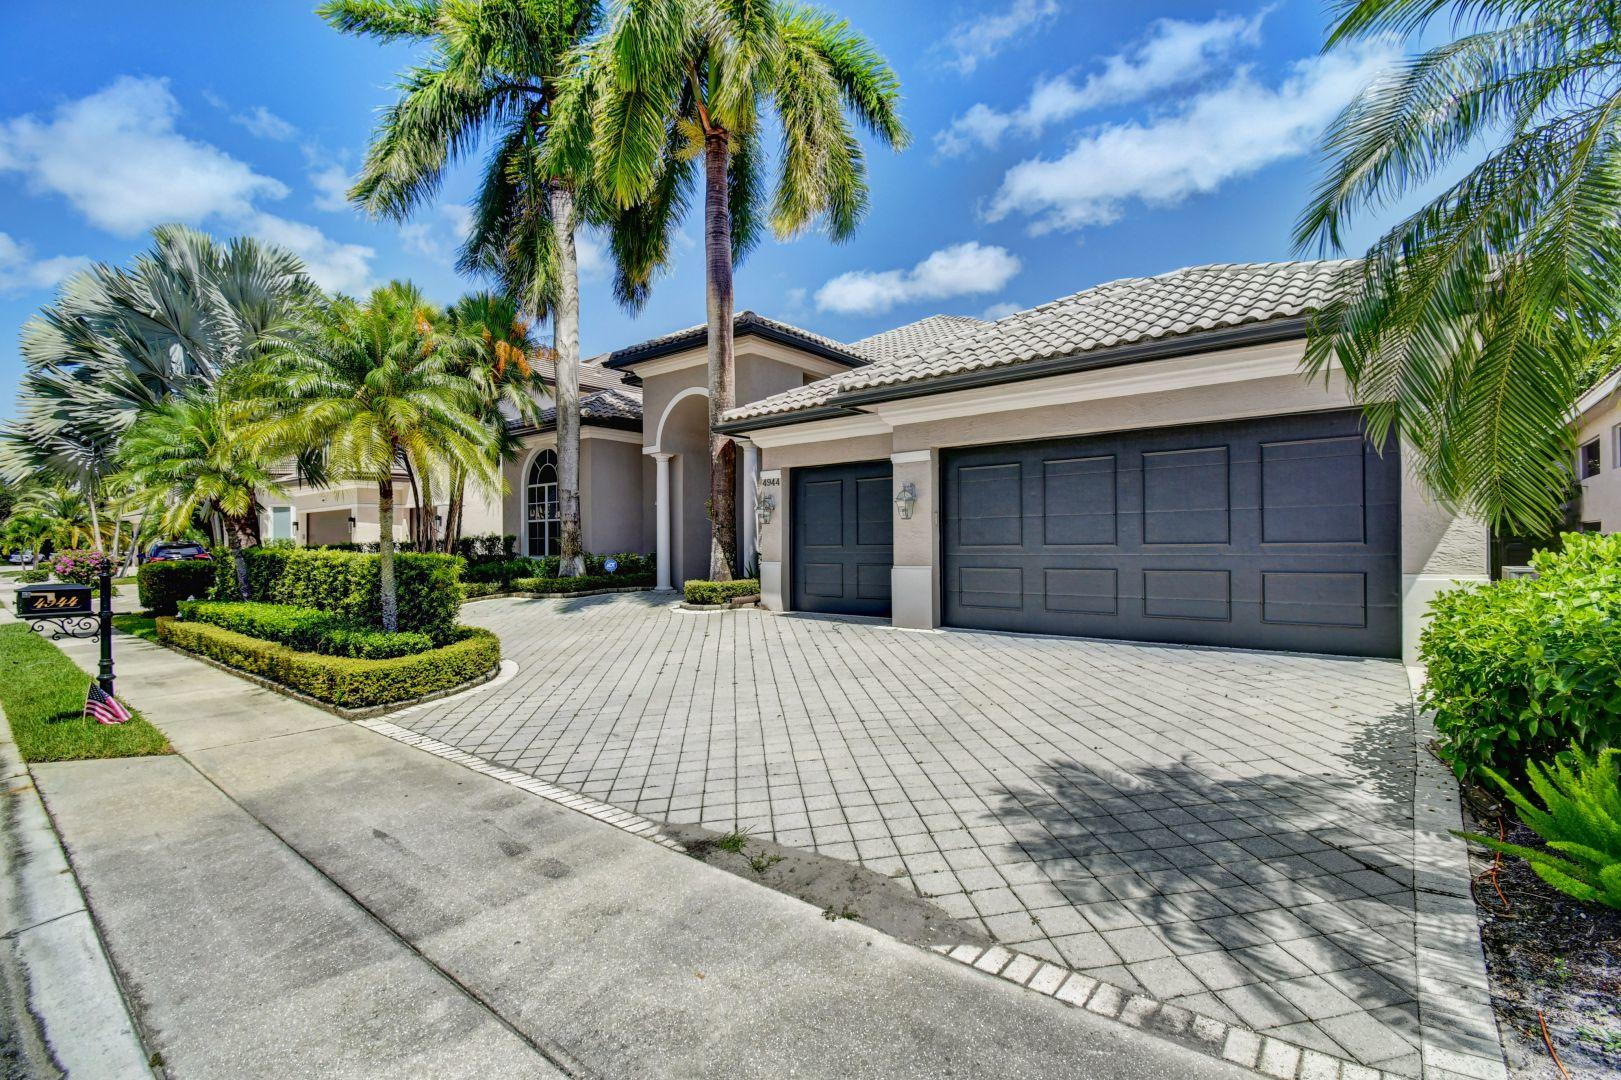 Home for sale in The Preserve Boca Raton Florida